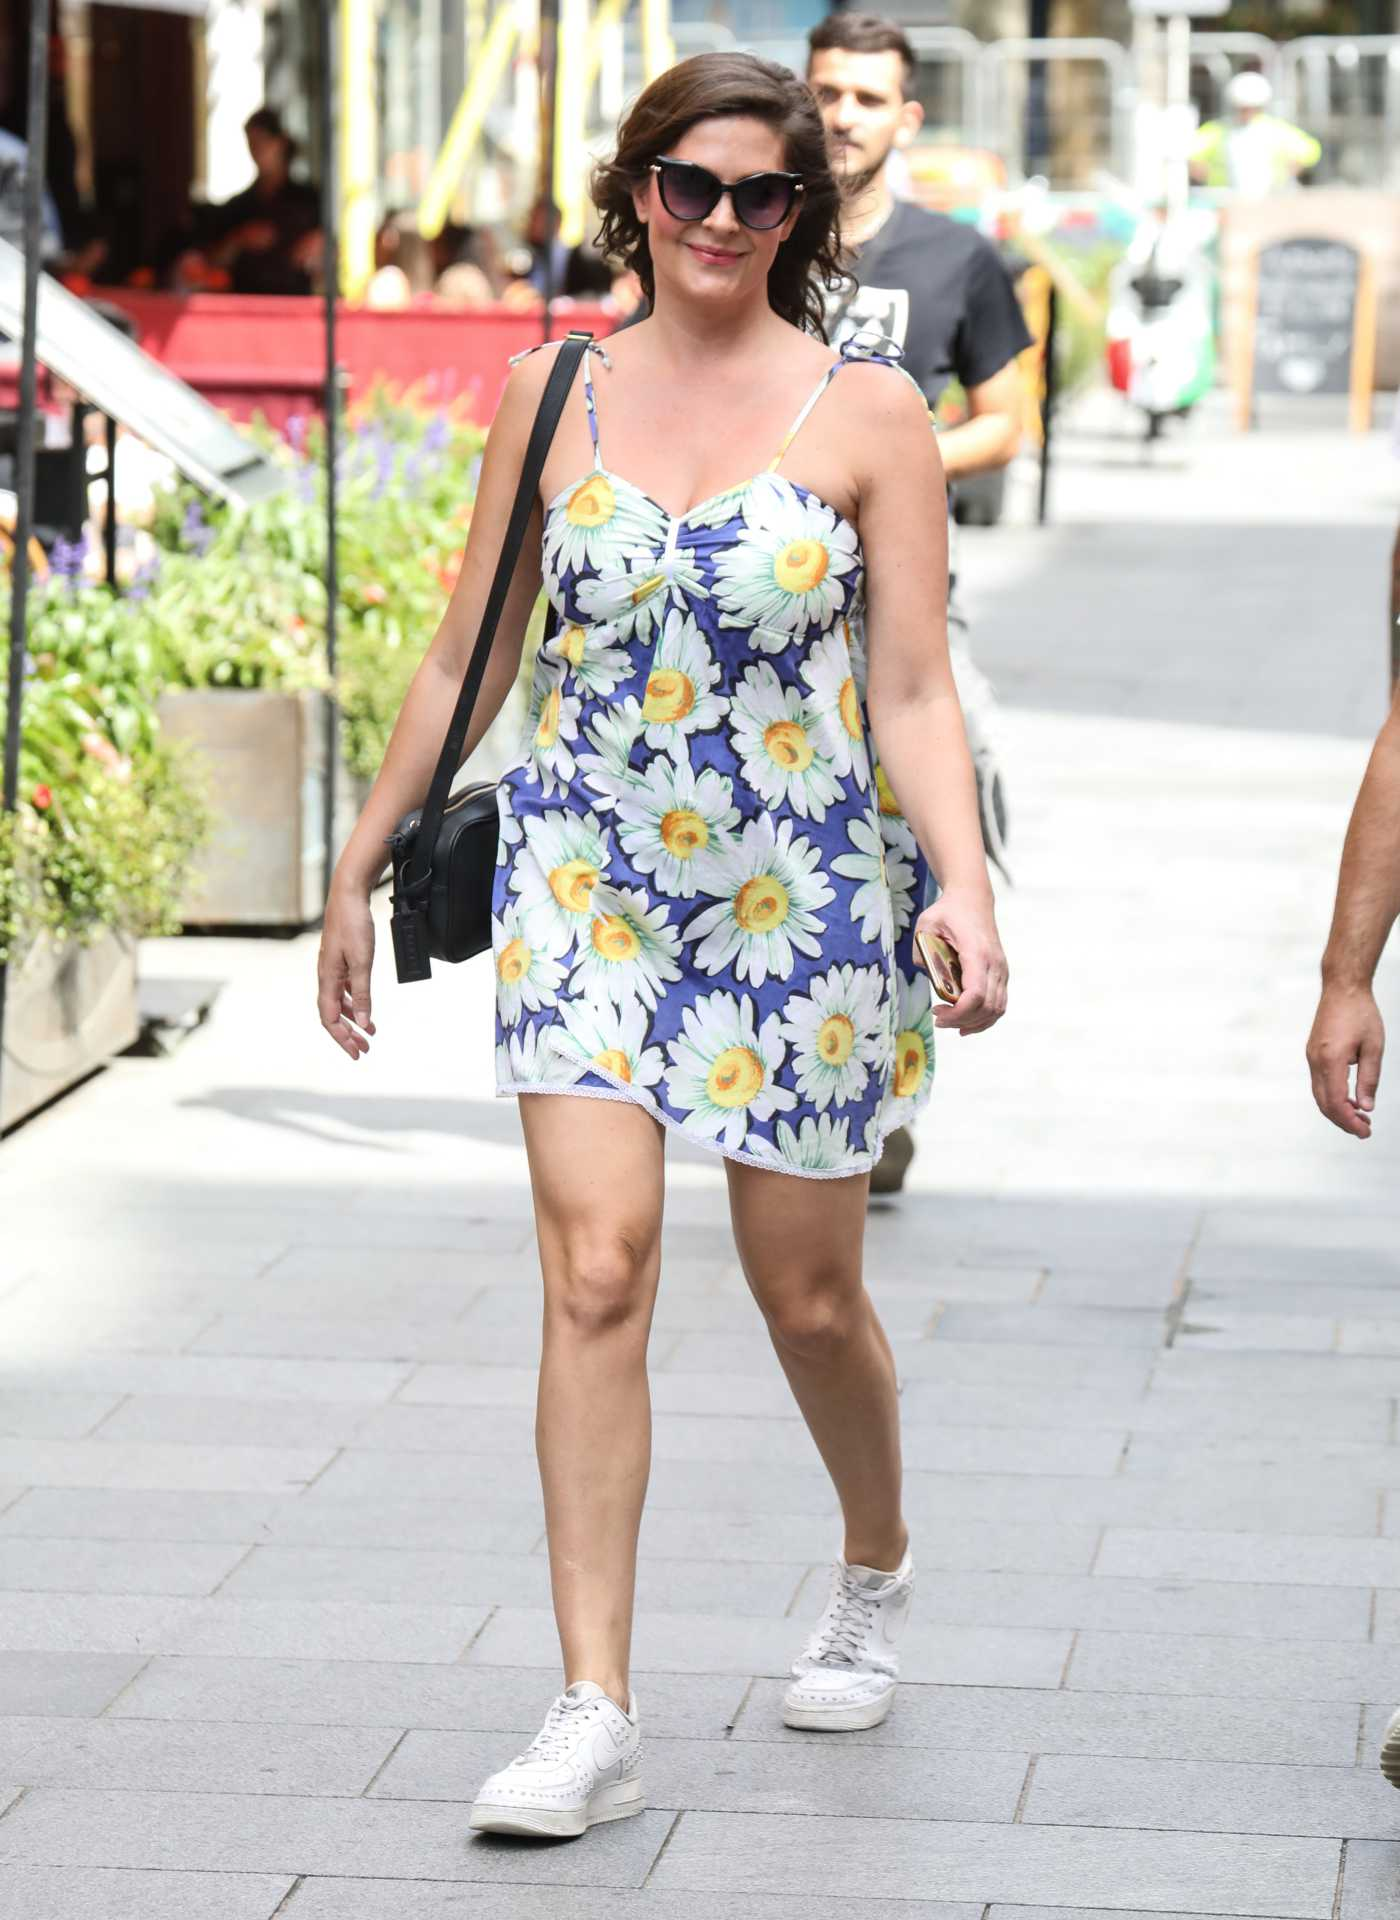 Lucy Horobin in a Floral Print Dress Arrives at the Global Radio Studios in London 07/13/2020